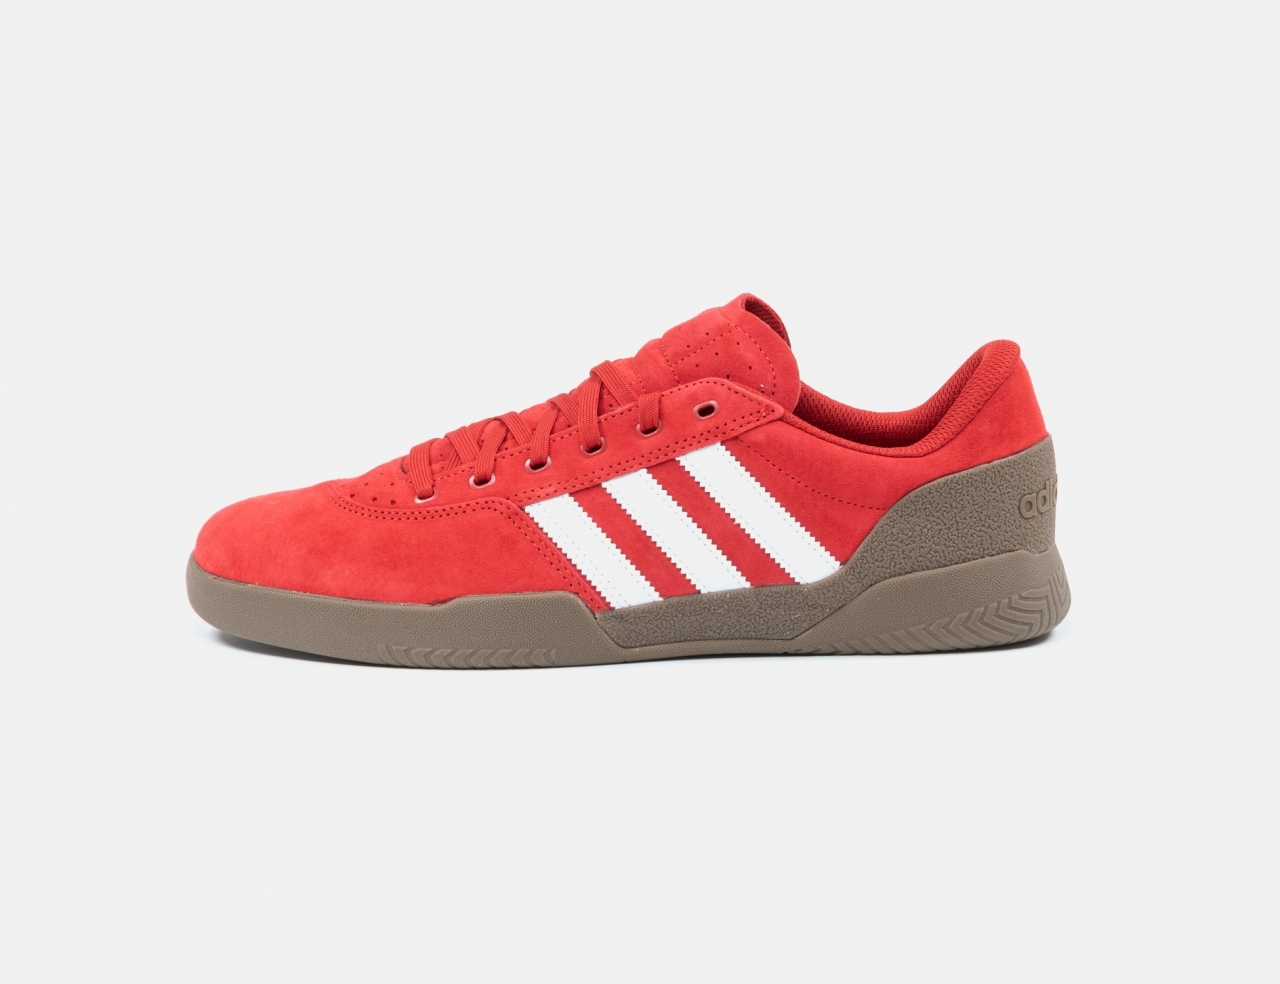 Adidas City Cup Sneaker - Red/Gum